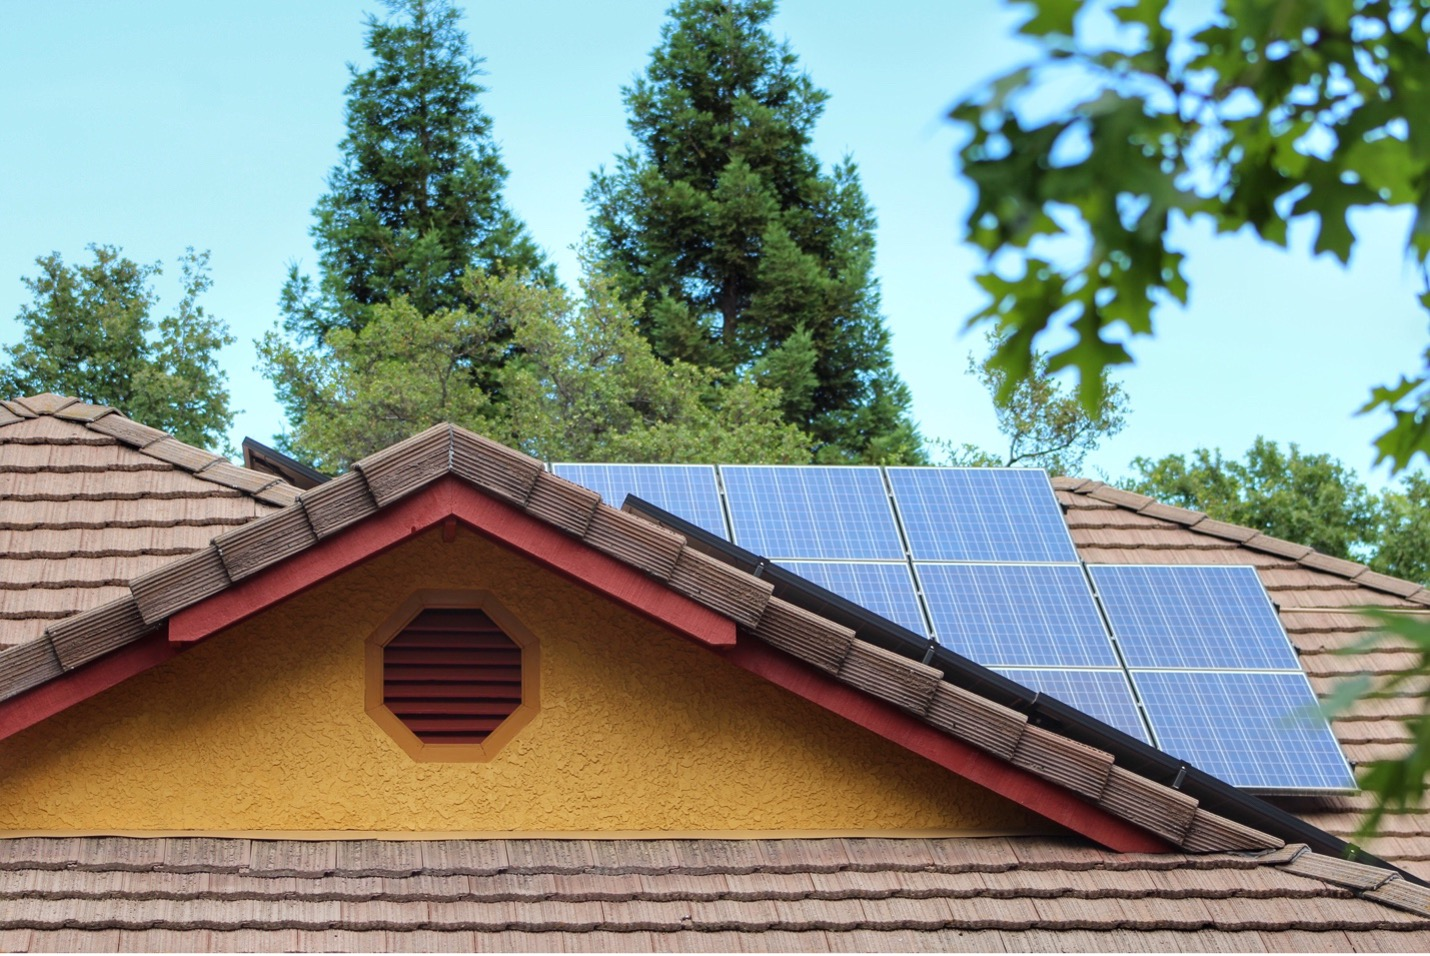 Read: 5 Reasons Why You Should Consider Solar to Power Your Home in Texas